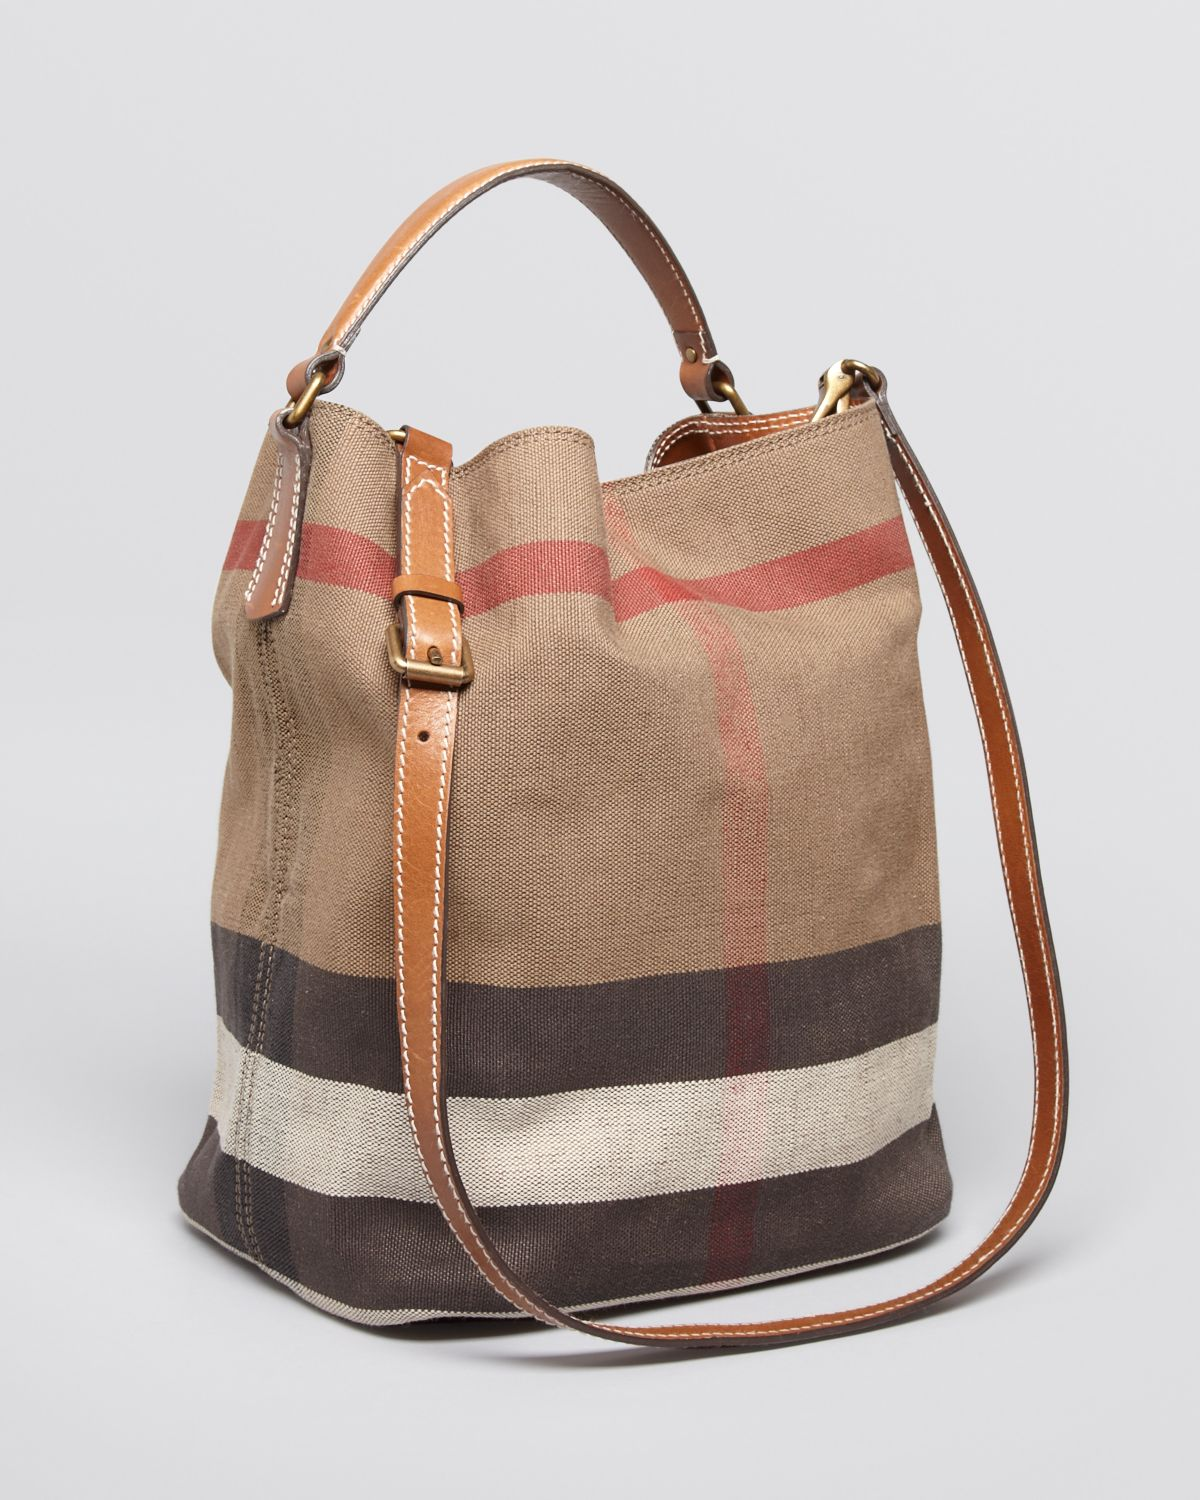 55c99e87d388 Lyst - Burberry Canvas Check Medium Ashby Hobo in Brown